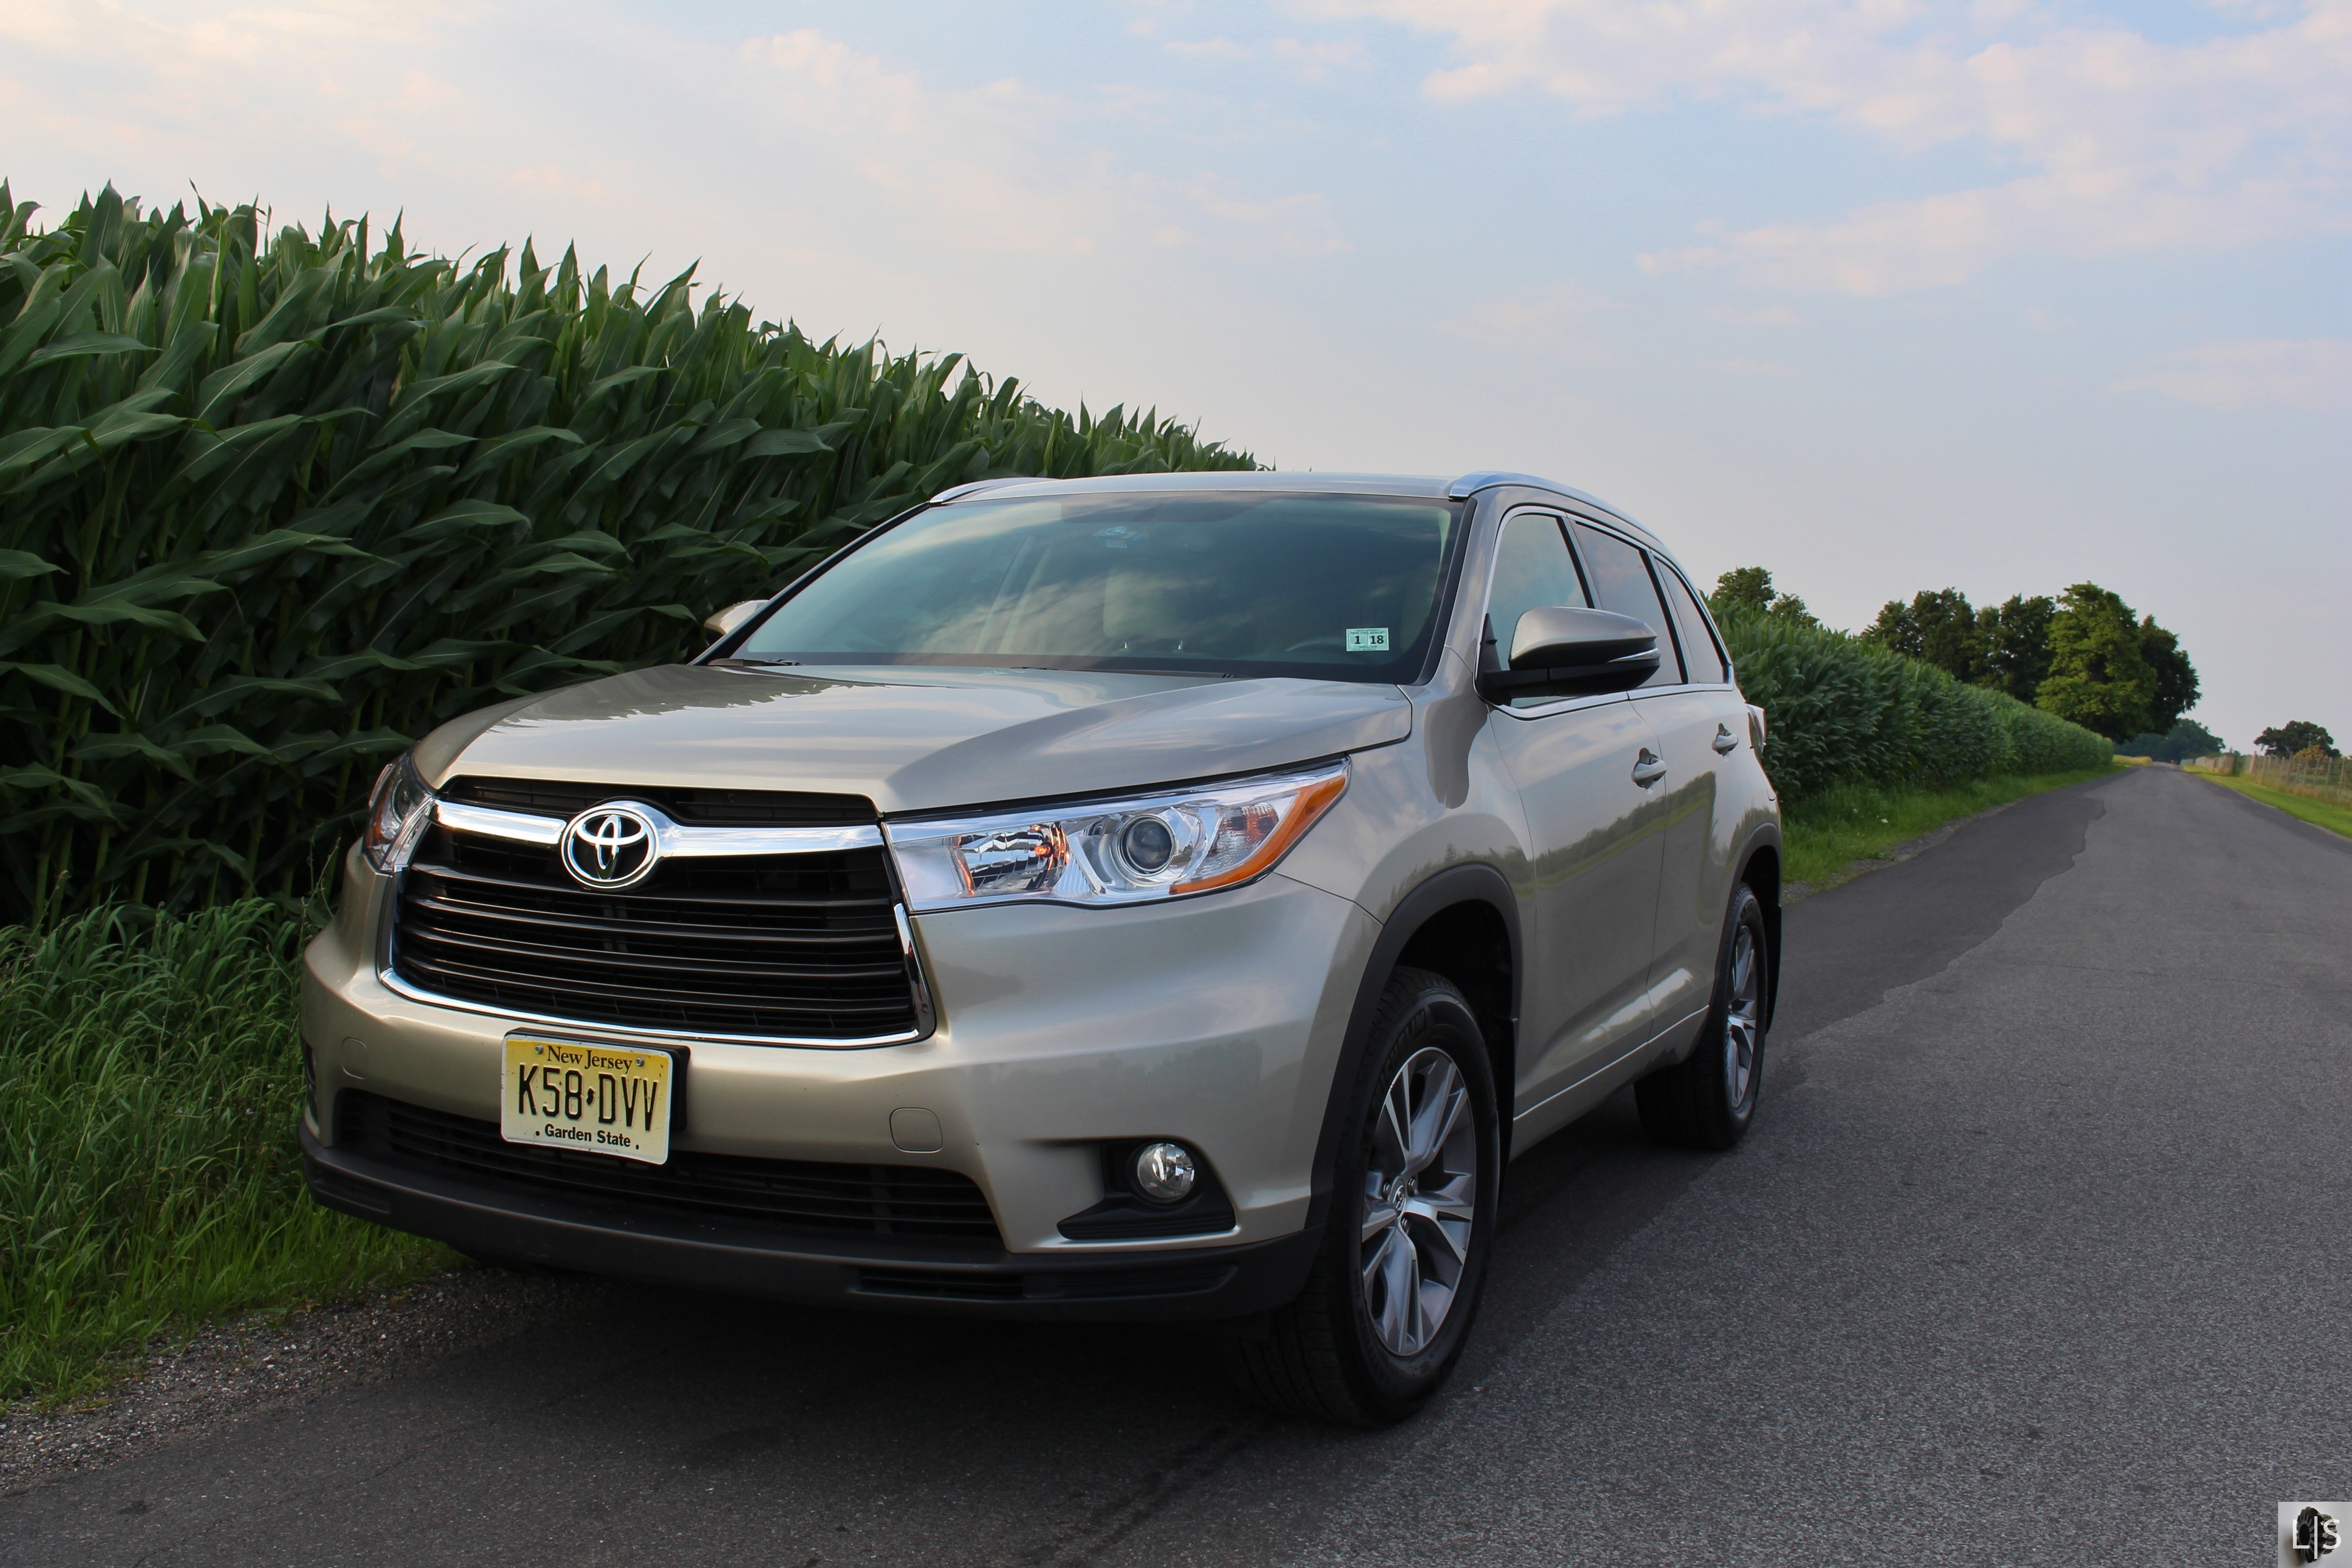 highlander car ltd limited review toyota low msrp plat salinas crossover story californian platinum news suv